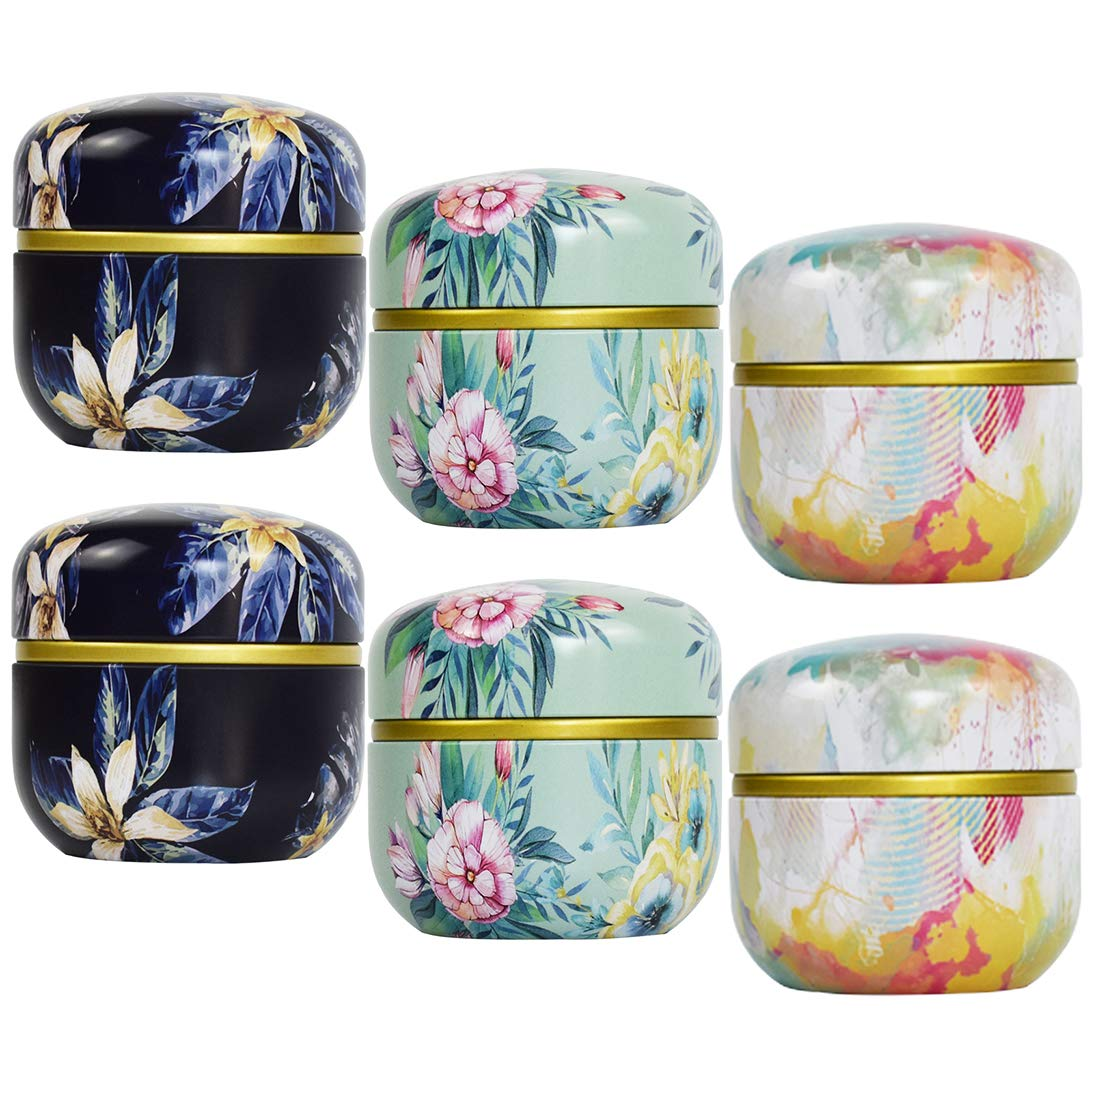 Tosnail 6 Pack Mini Tea Storage Containers Tea Tins Coffee Tins Food Storage Container for Tea, Coffee, Herb, Candy, Chocolate, Sugar, Spices, Candle